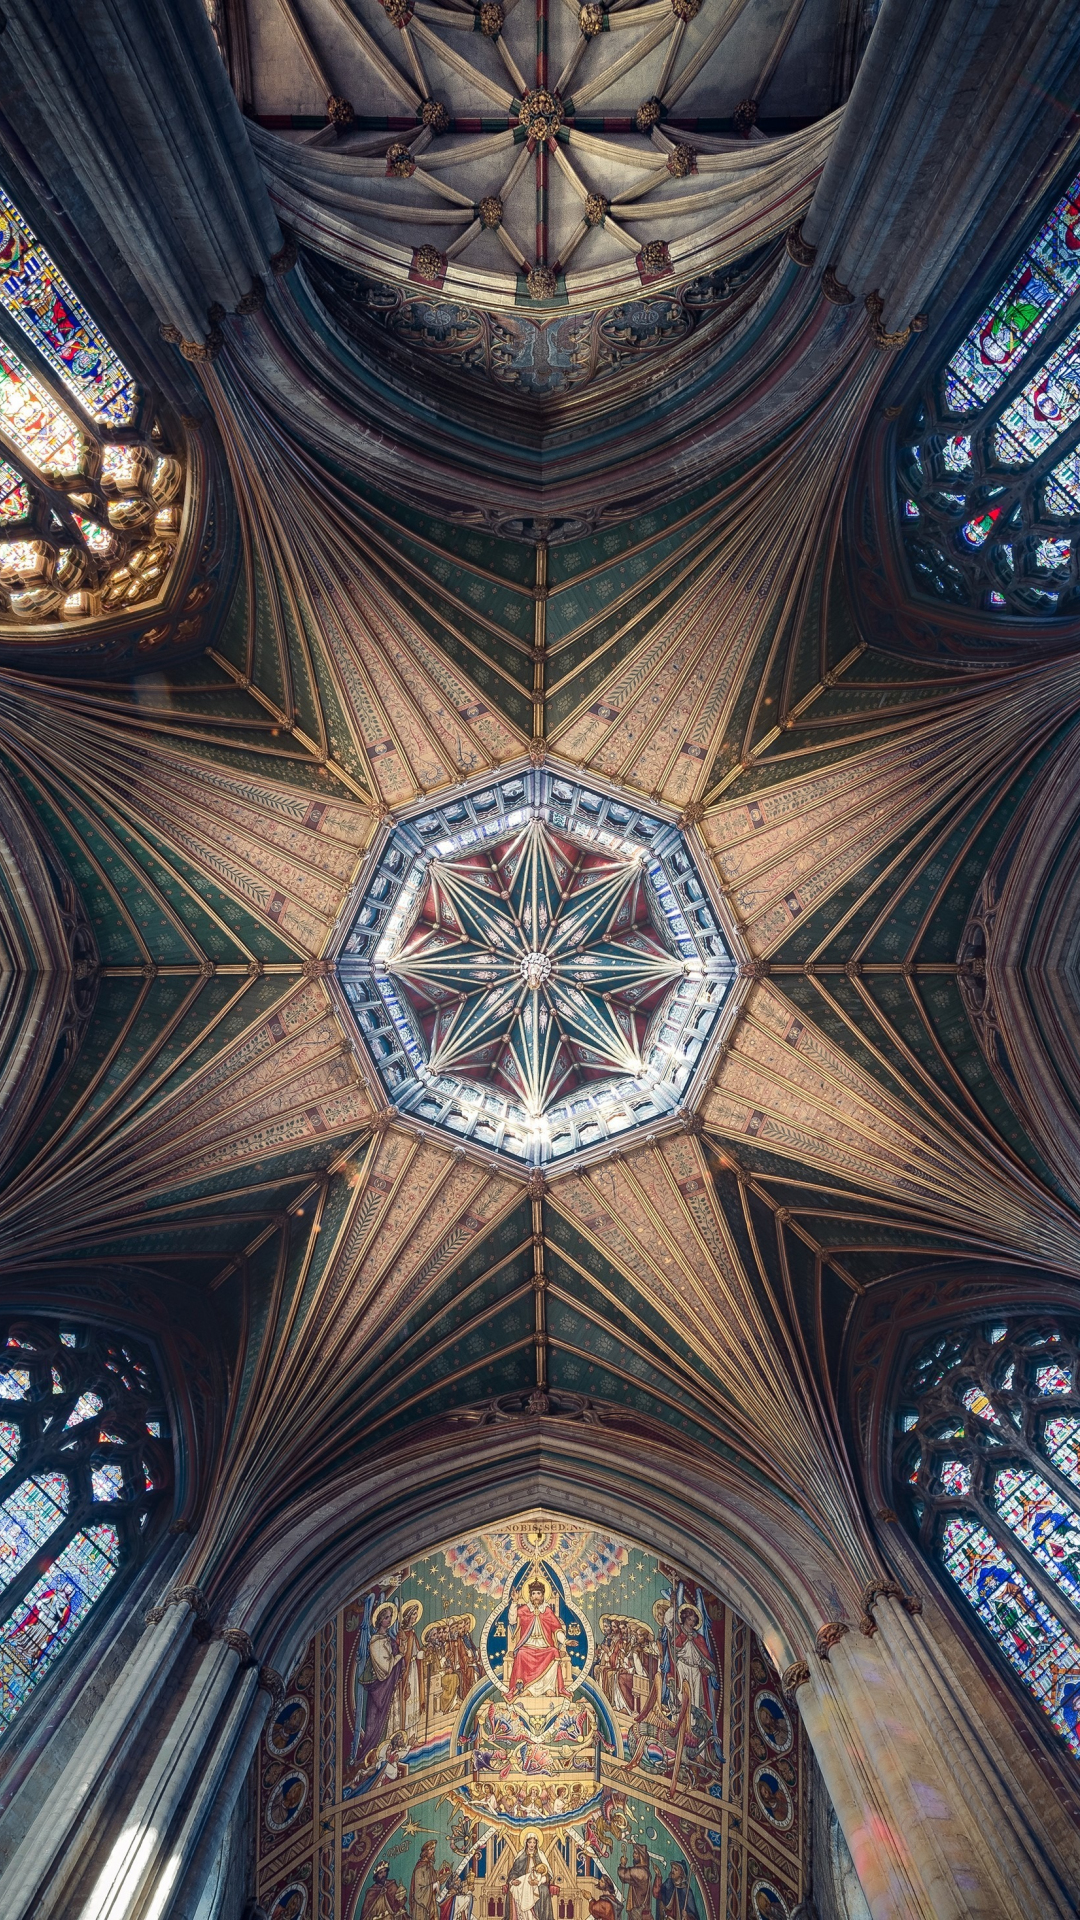 Ceiling, cathedral, symmetrical interior, architecture, 1080x1920 wallpaper